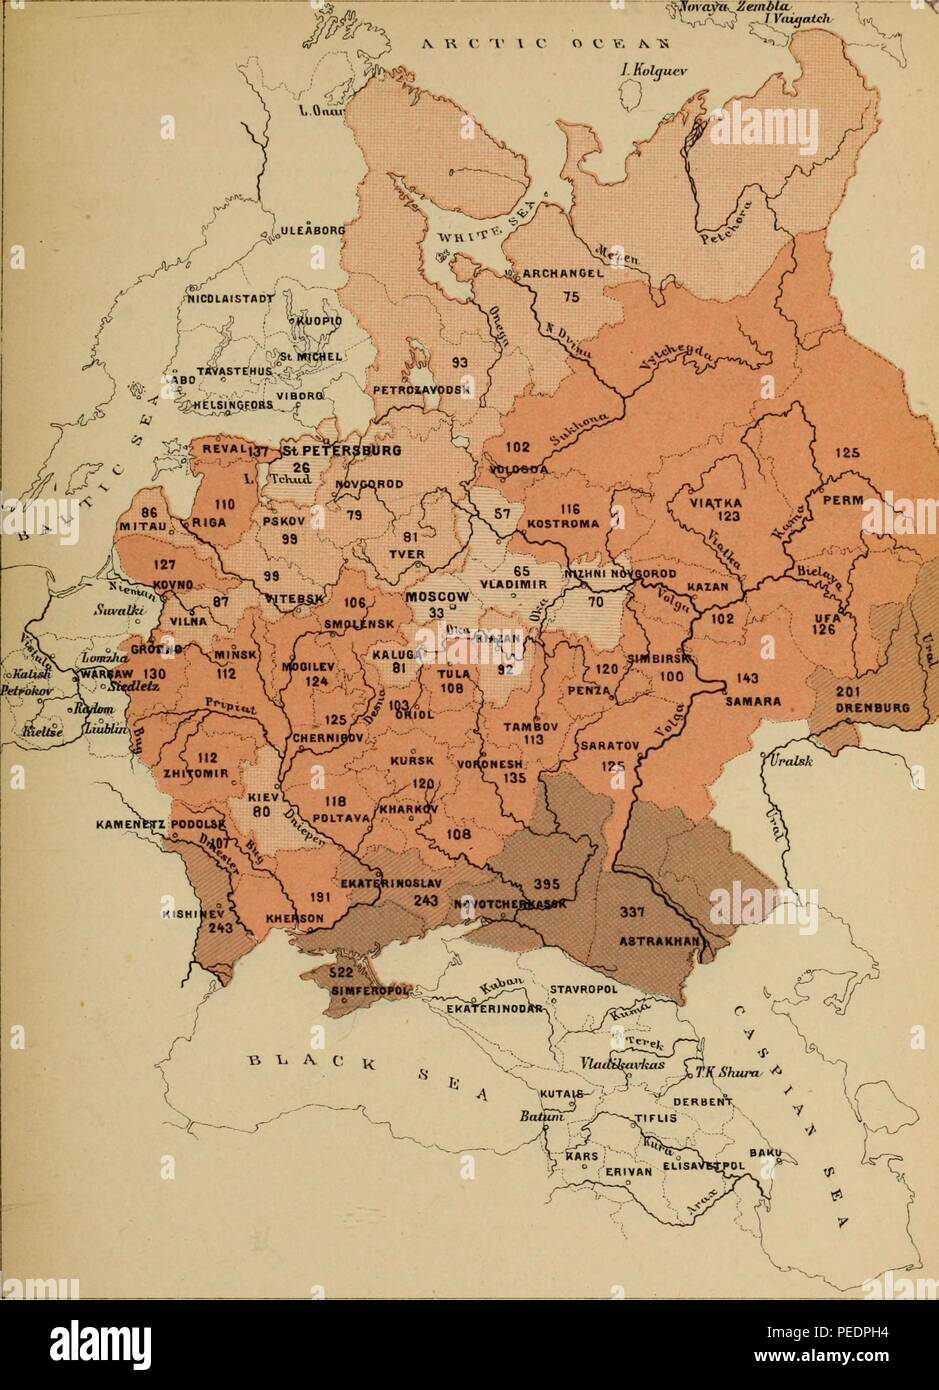 Color coded map showing Russian agriculture, including the number of cattle per capita, for various regions, 1893. Courtesy Internet Archive. () - Stock Image